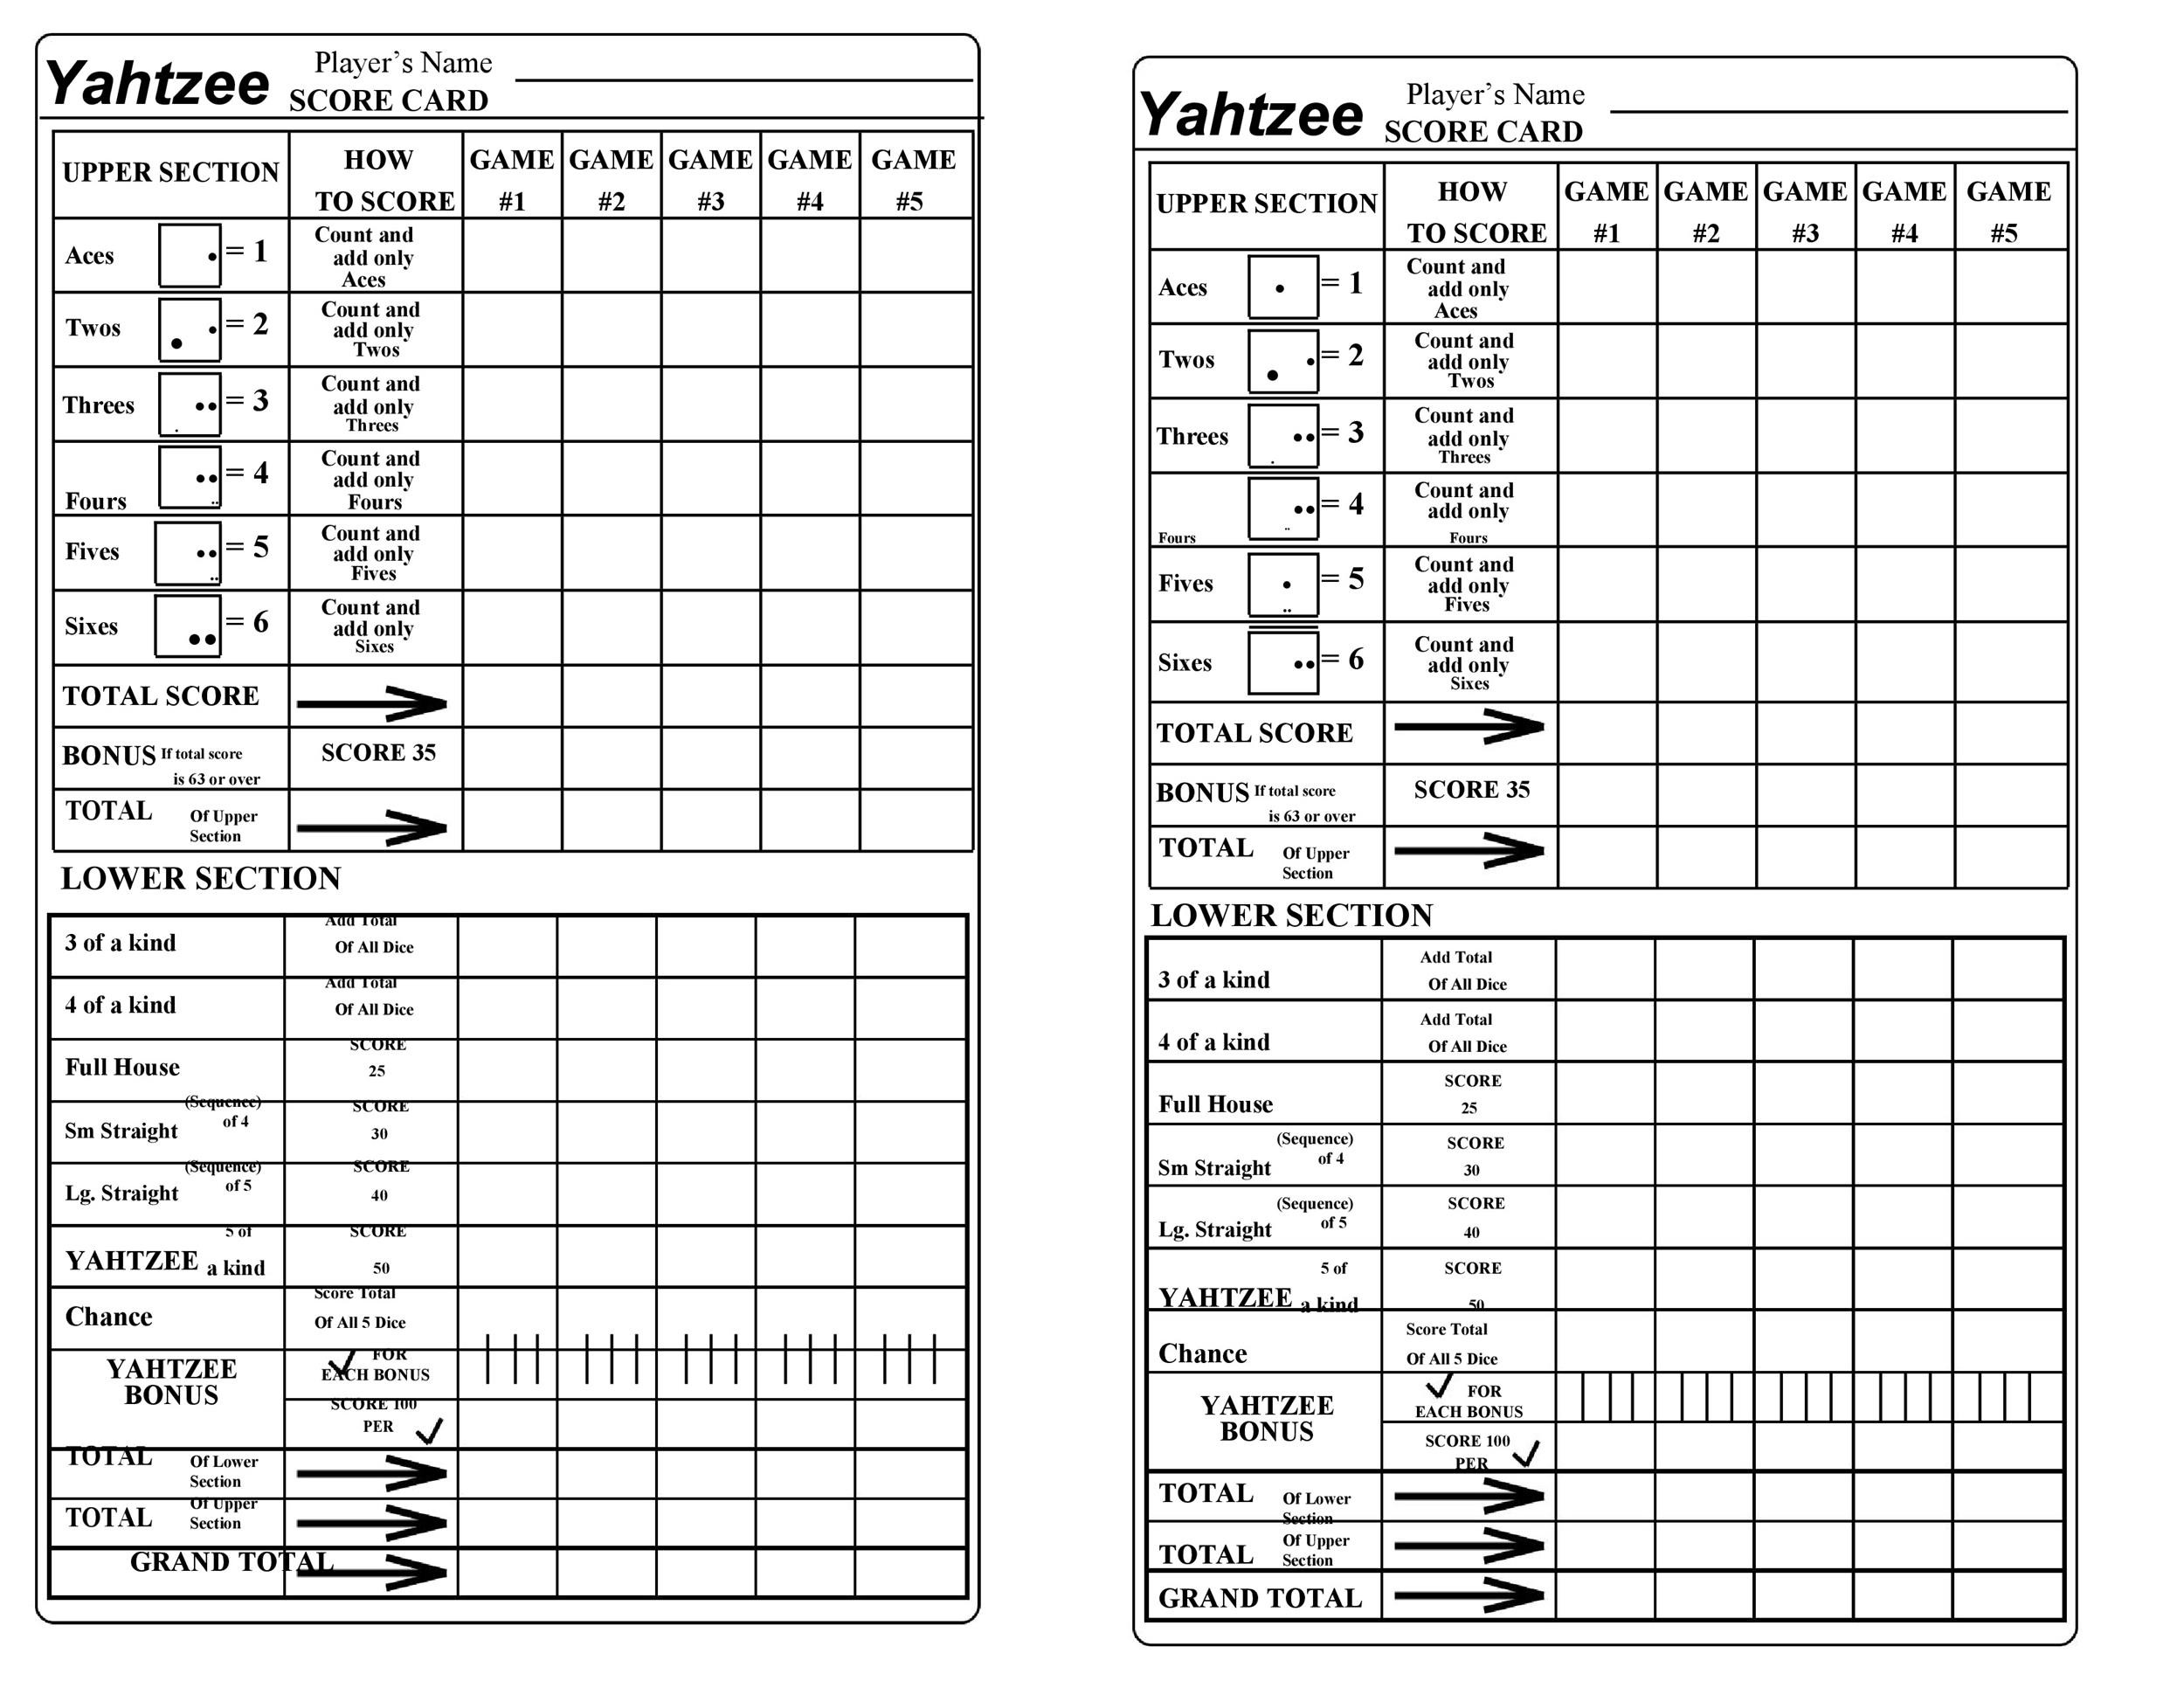 photograph regarding Yahtzee Score Card Printable referred to as 28 Printable Yahtzee Rating Sheets Playing cards (101% Free of charge) ᐅ